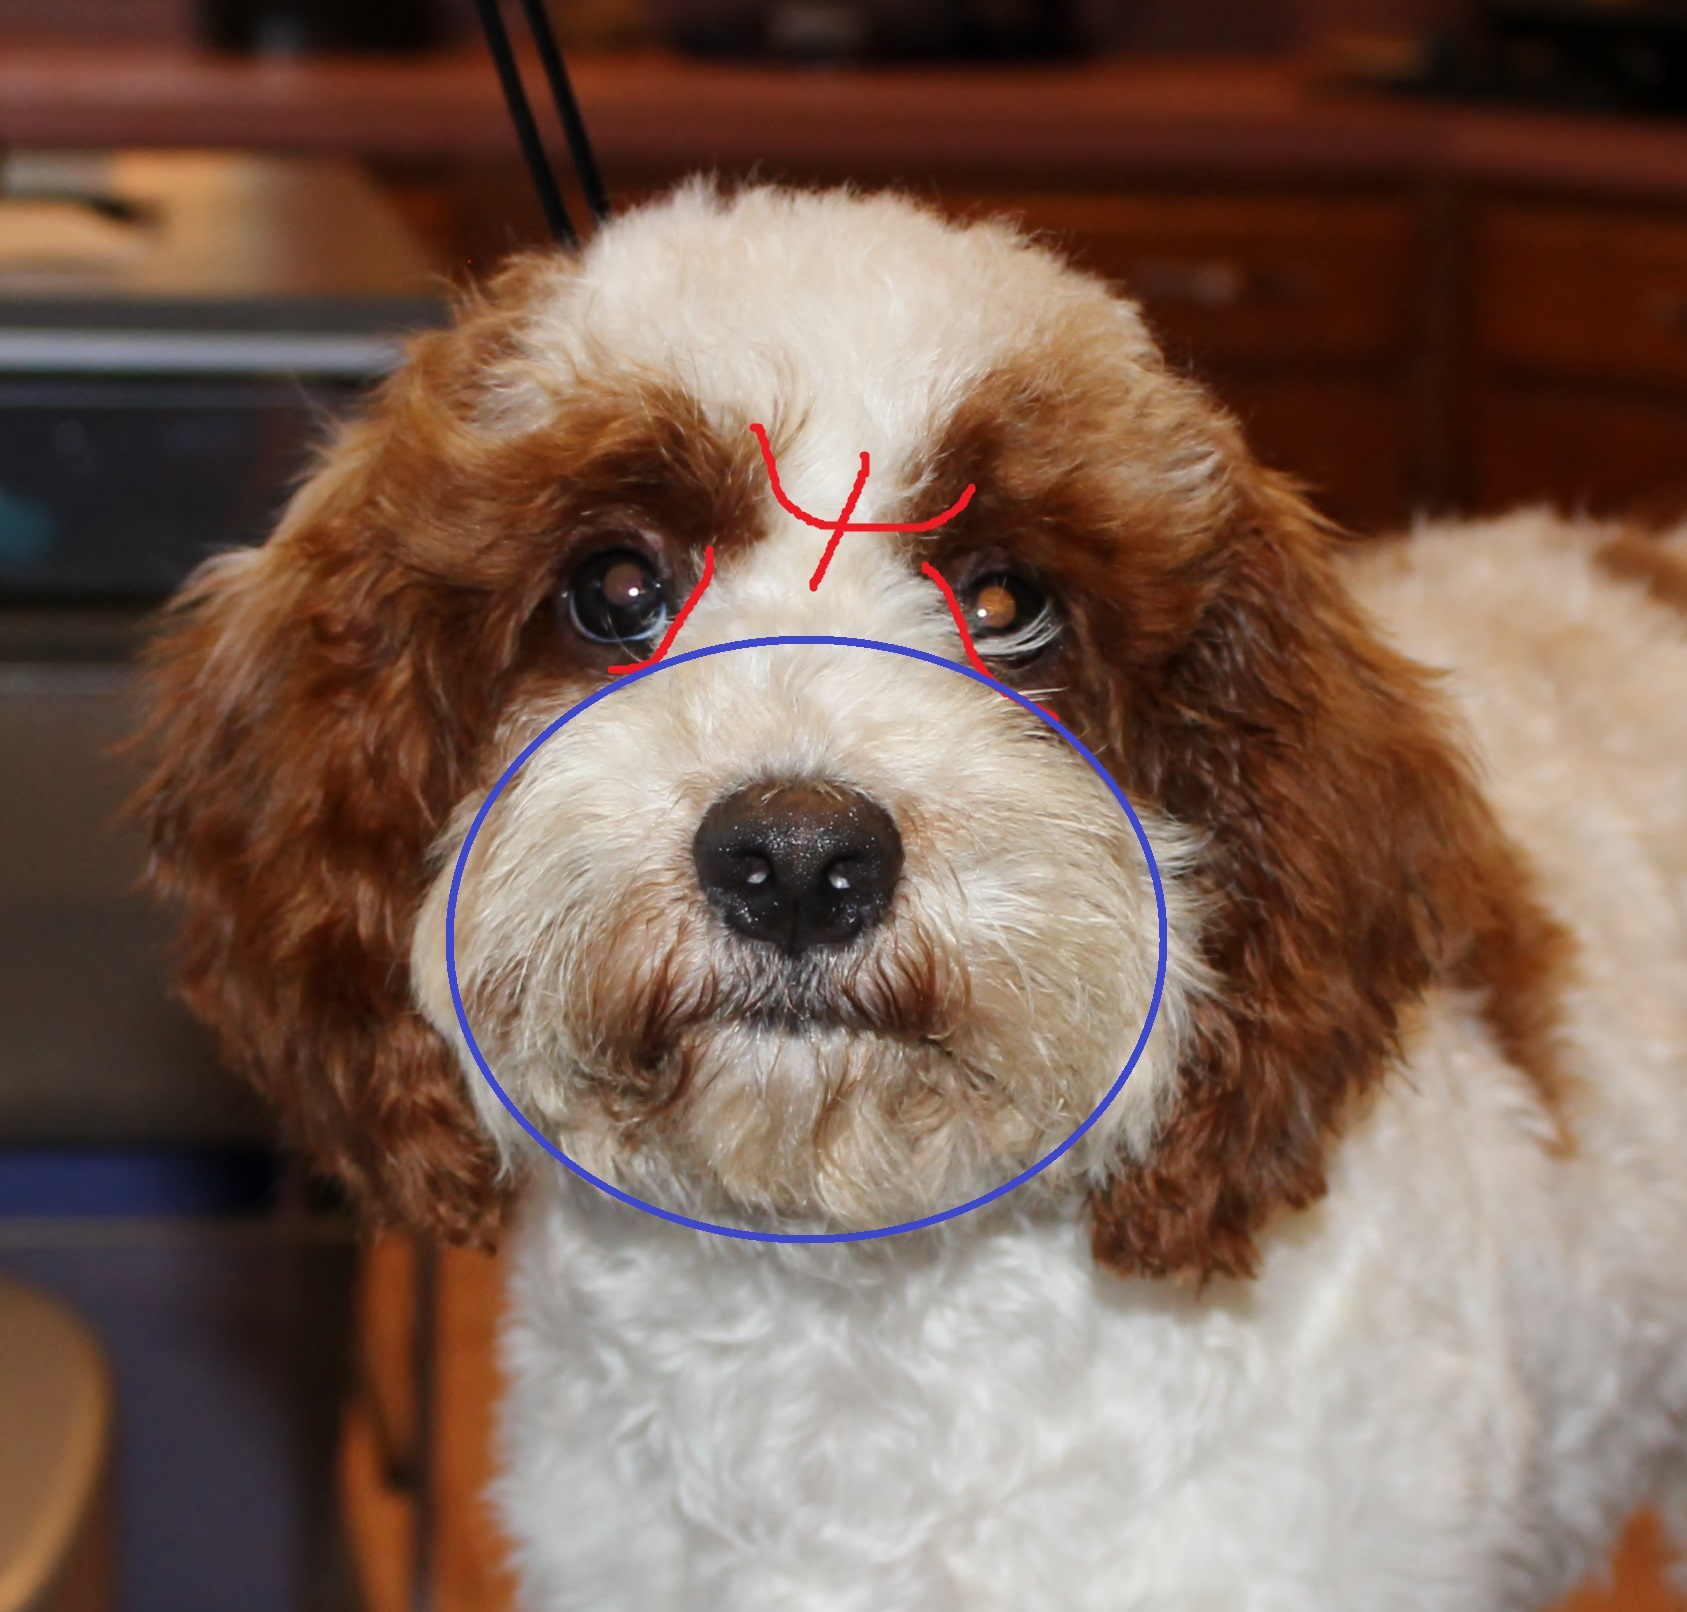 Cockapoo haircuts - Clipping For Vision After With Marks